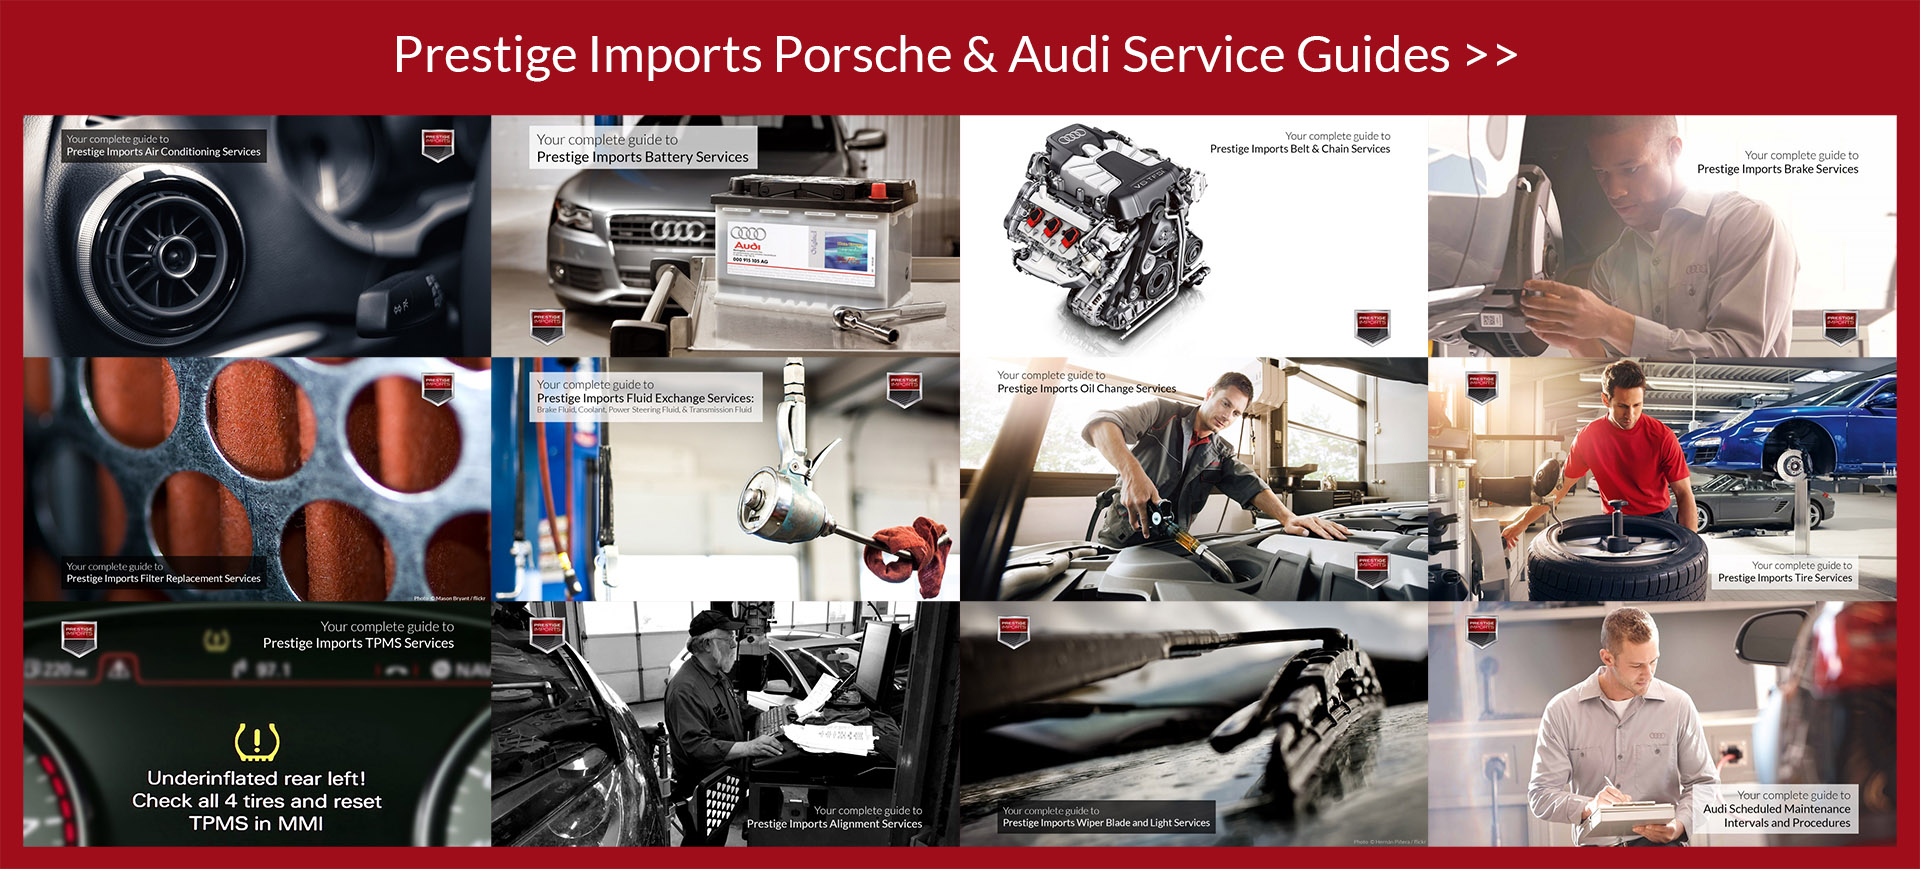 View Prestige Imports' Porsche and Audi Service Guides